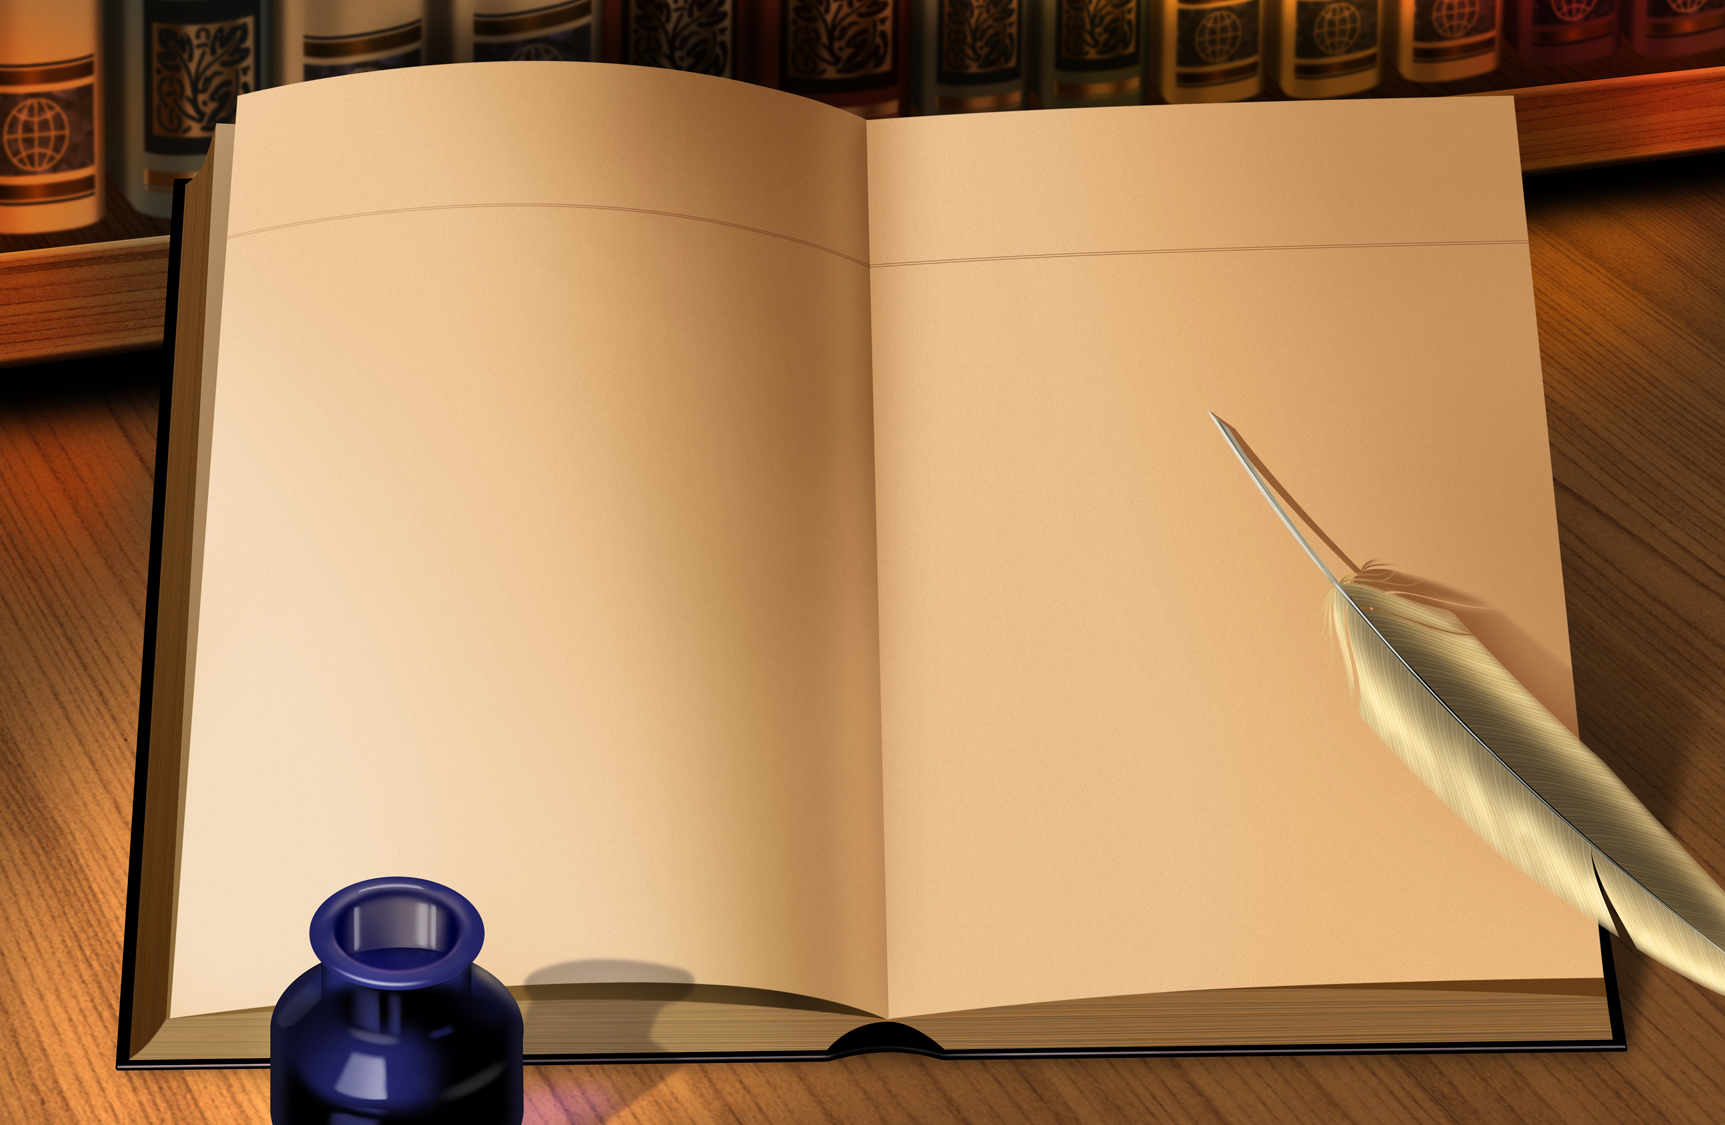 open book, Texture book, download background, open book texture background, books